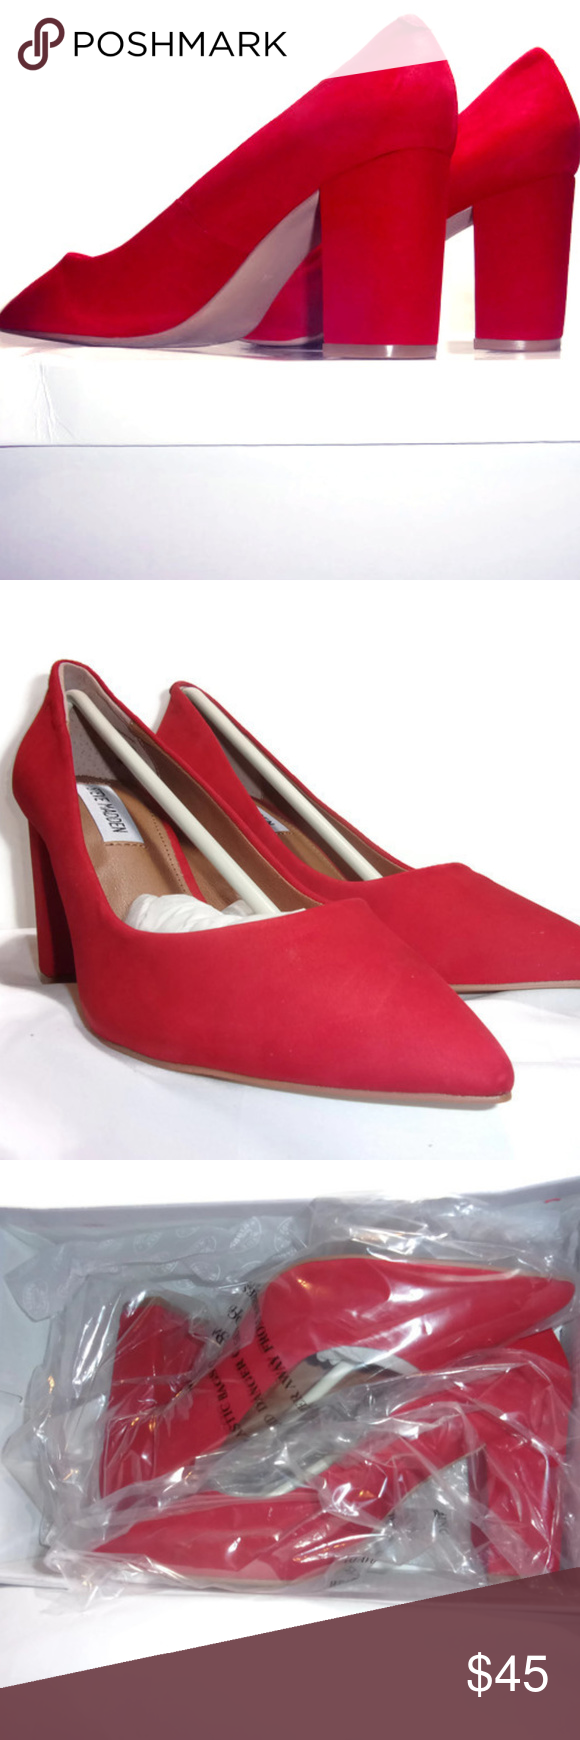 6d8b080128b Brand New Steve Madden Ashlyn Pump Red Nubuck 7M Brand New Never Worn  Exclusive Steve Madden Ashlyn Women s Pump Red Nubuck Leather Sz. 7M US.